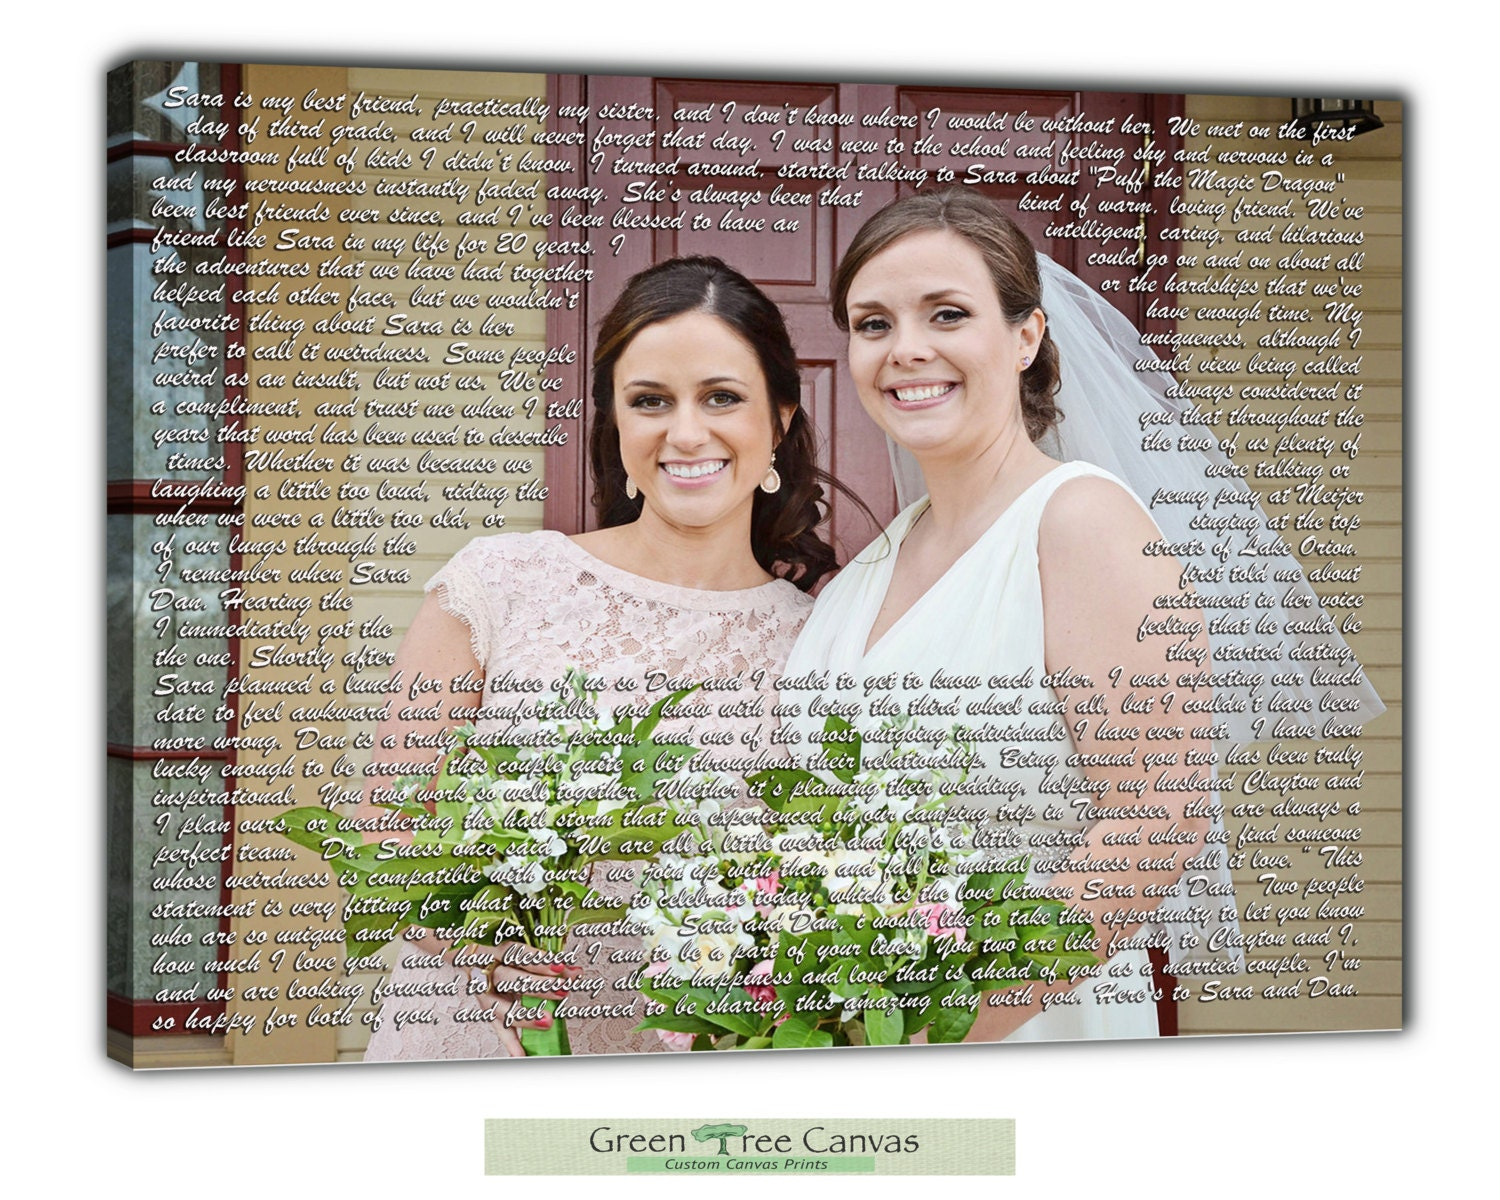 Maid Of Honor Gifts From Bride: Maid Of Honor Speech Gift Gift For Bride From Sister